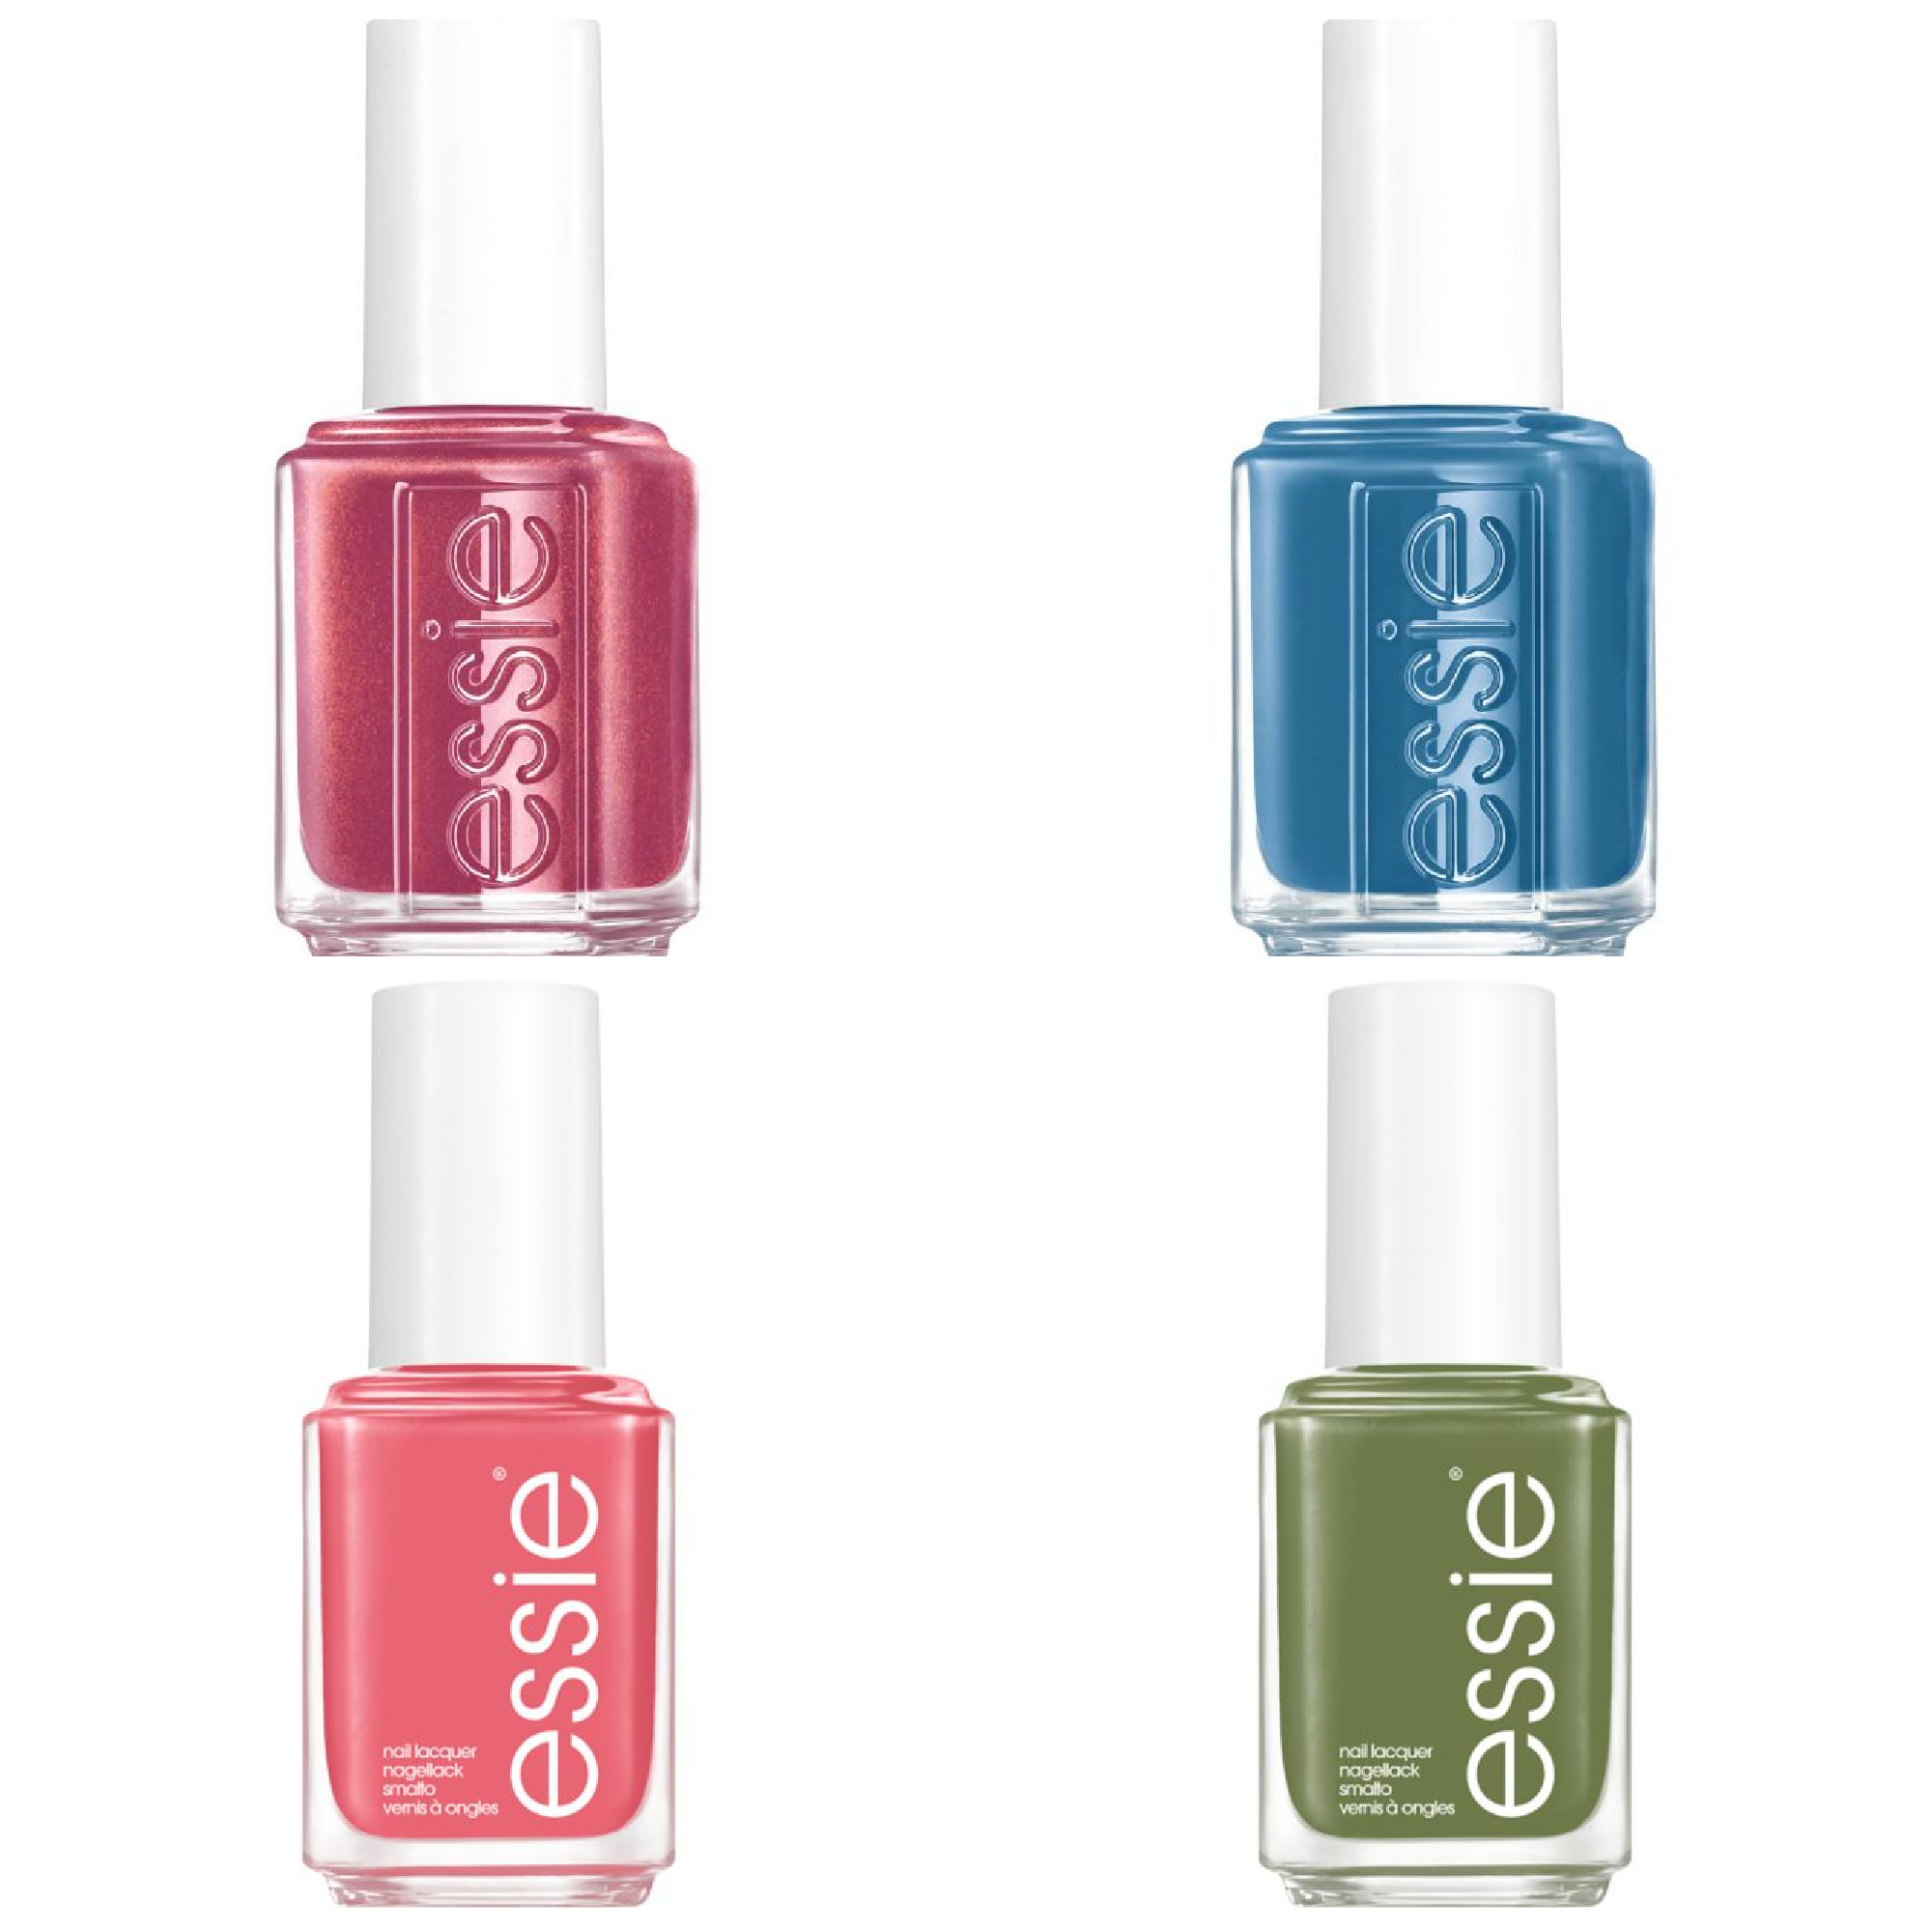 Essie Ferris Of Them Nail Polish Collection April 2021